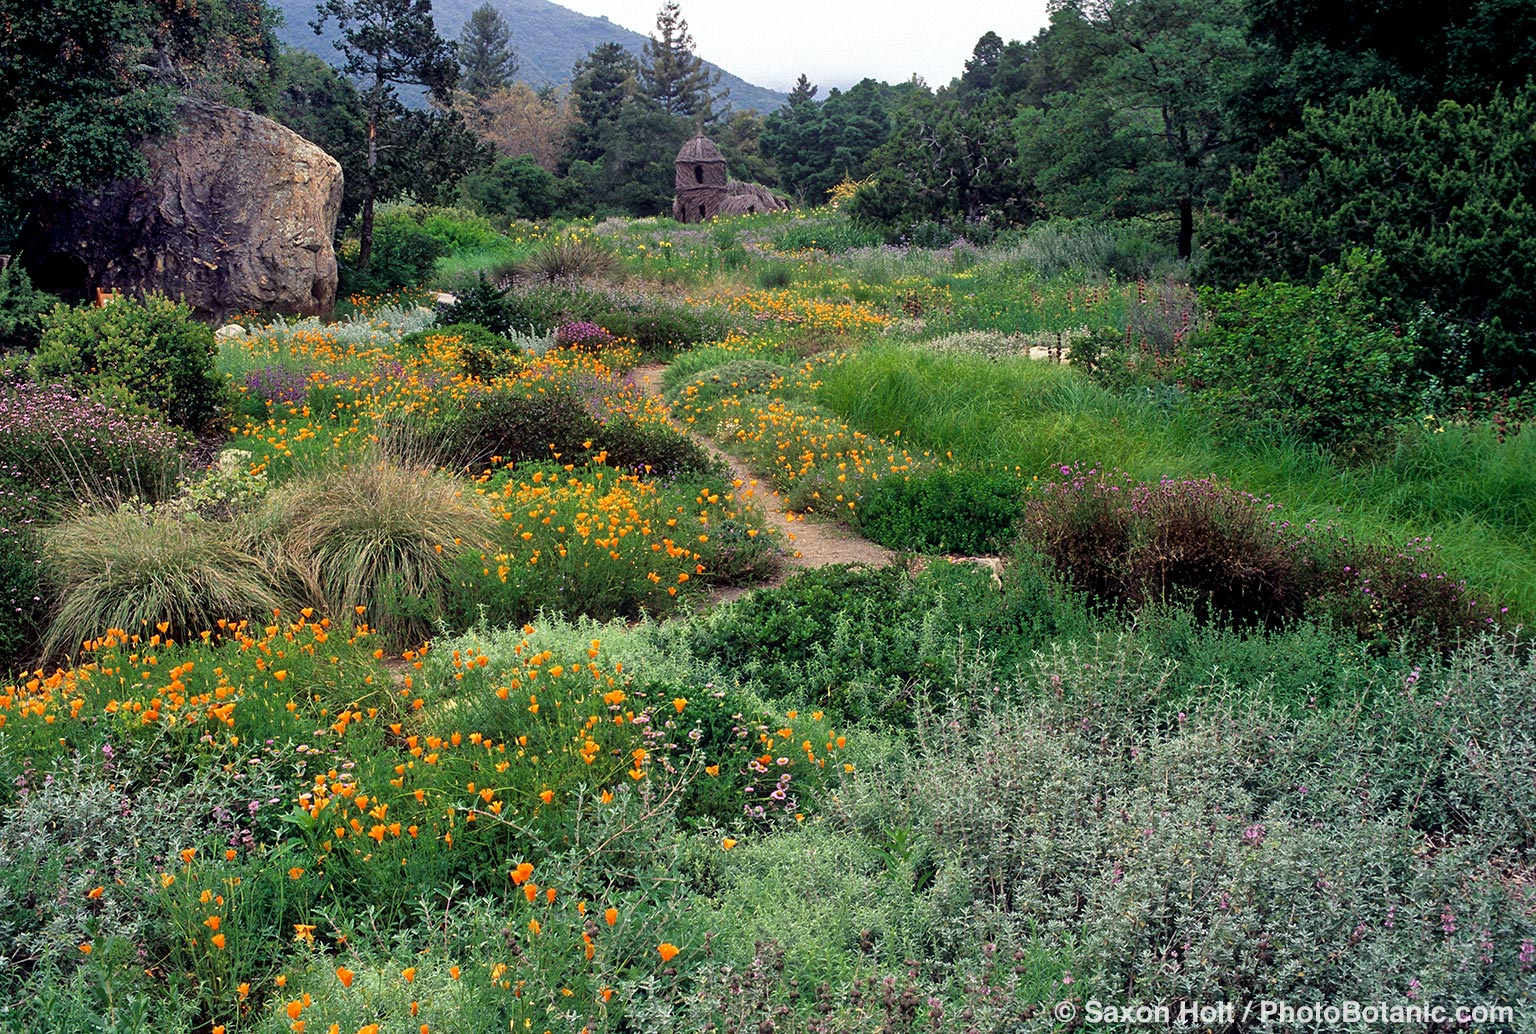 Santa barbara workshop photobotanic California native plants for the garden